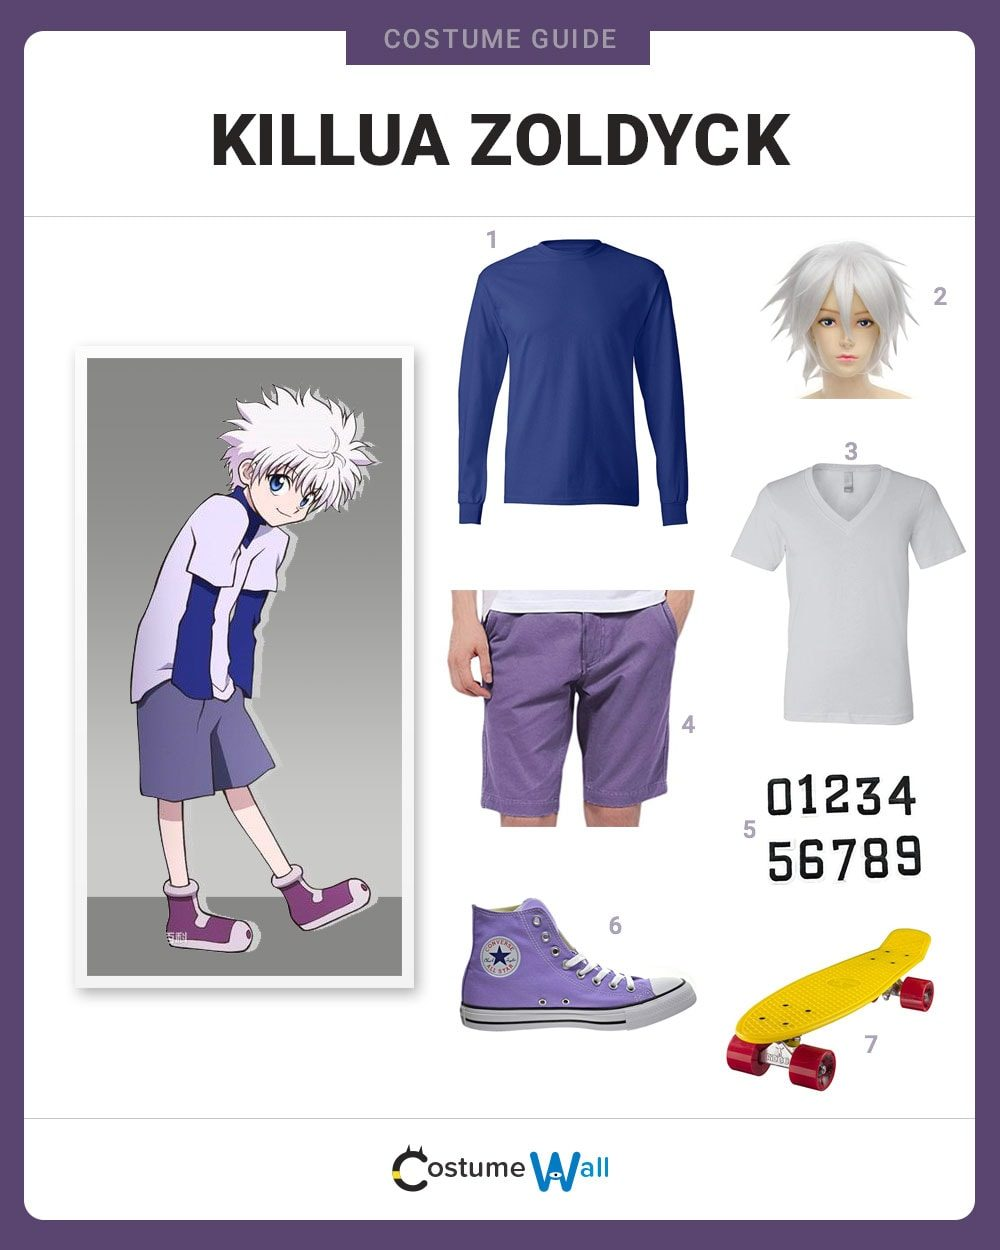 Killua Zoldyck Costume Guide